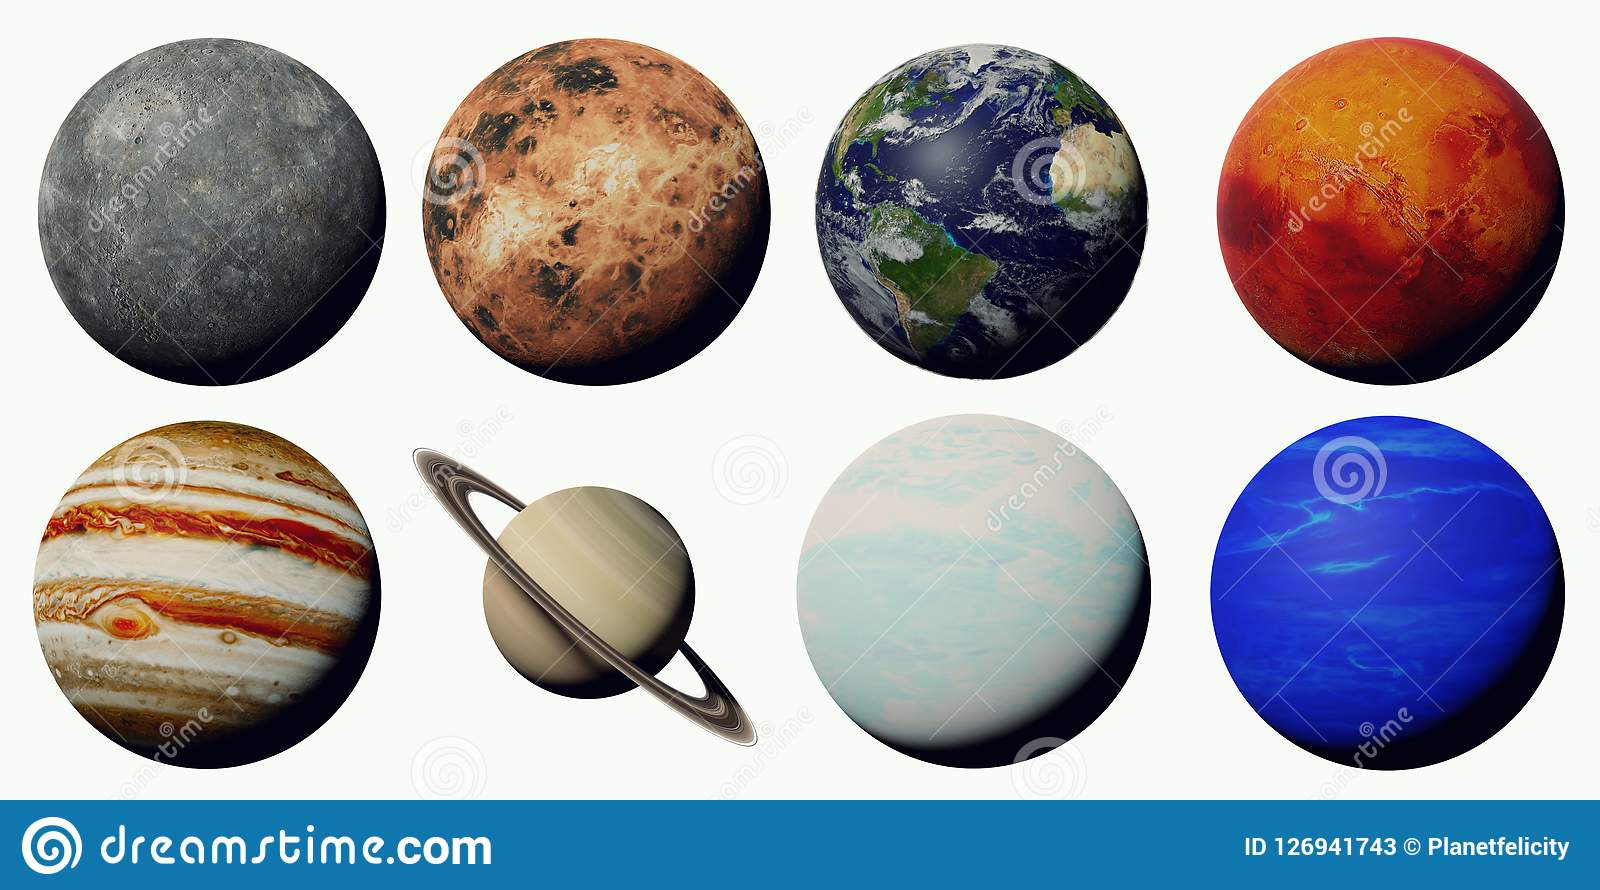 The Planets Of The Solar System Isolated On White